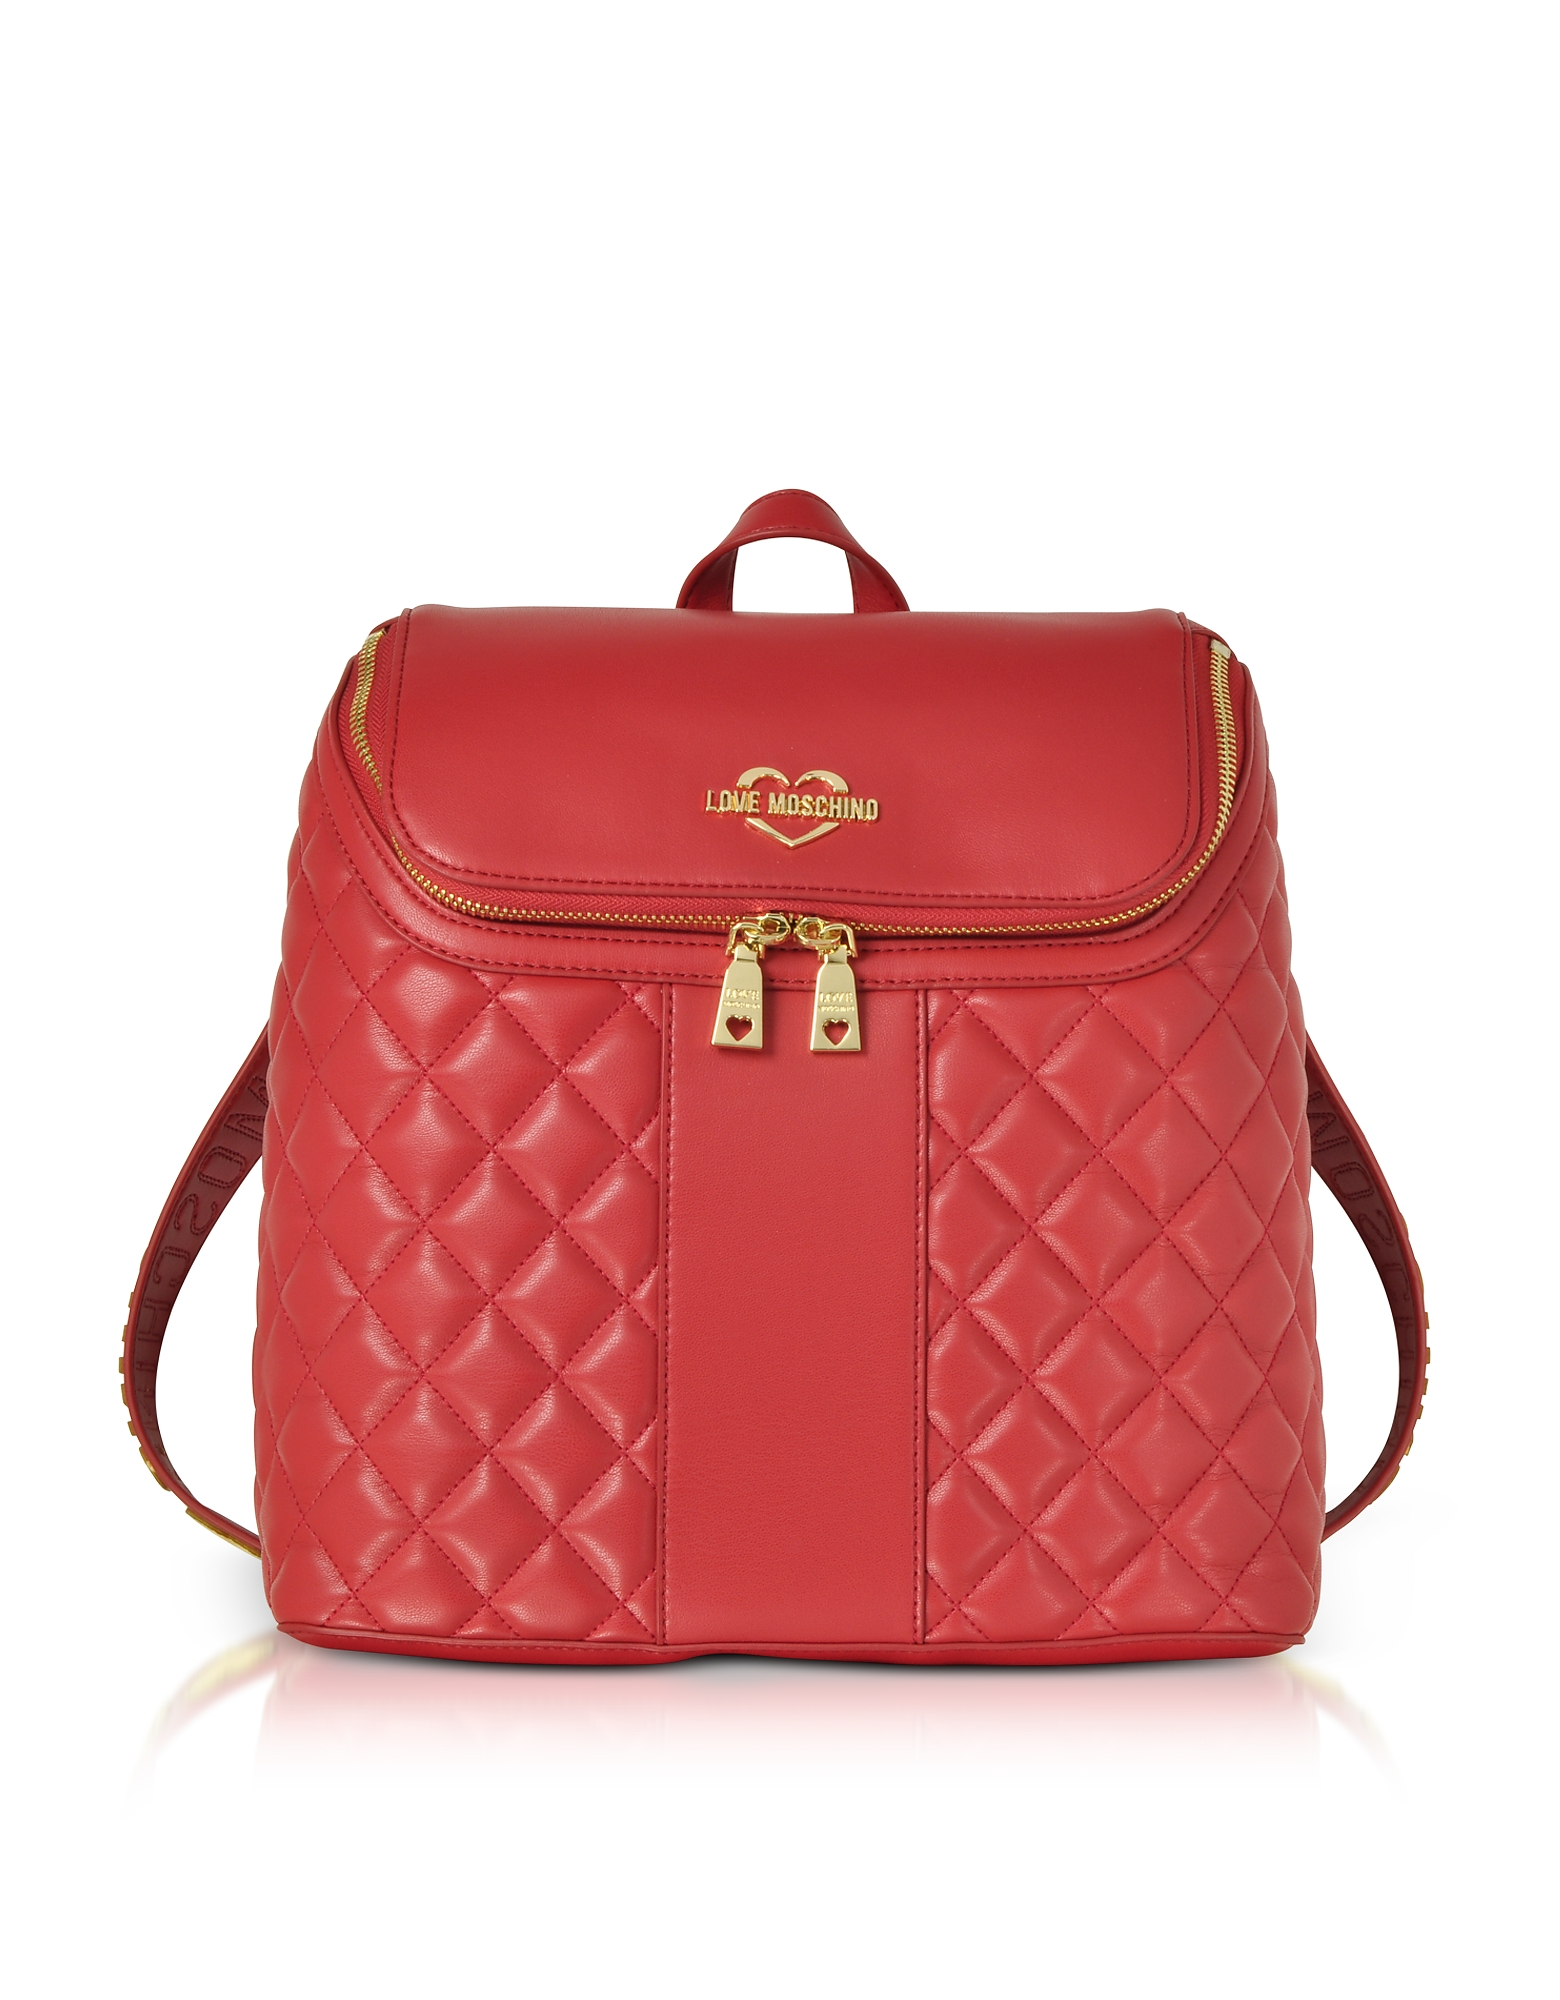 LOVE MOSCHINO Quilted Eco Leather Backpack in Red